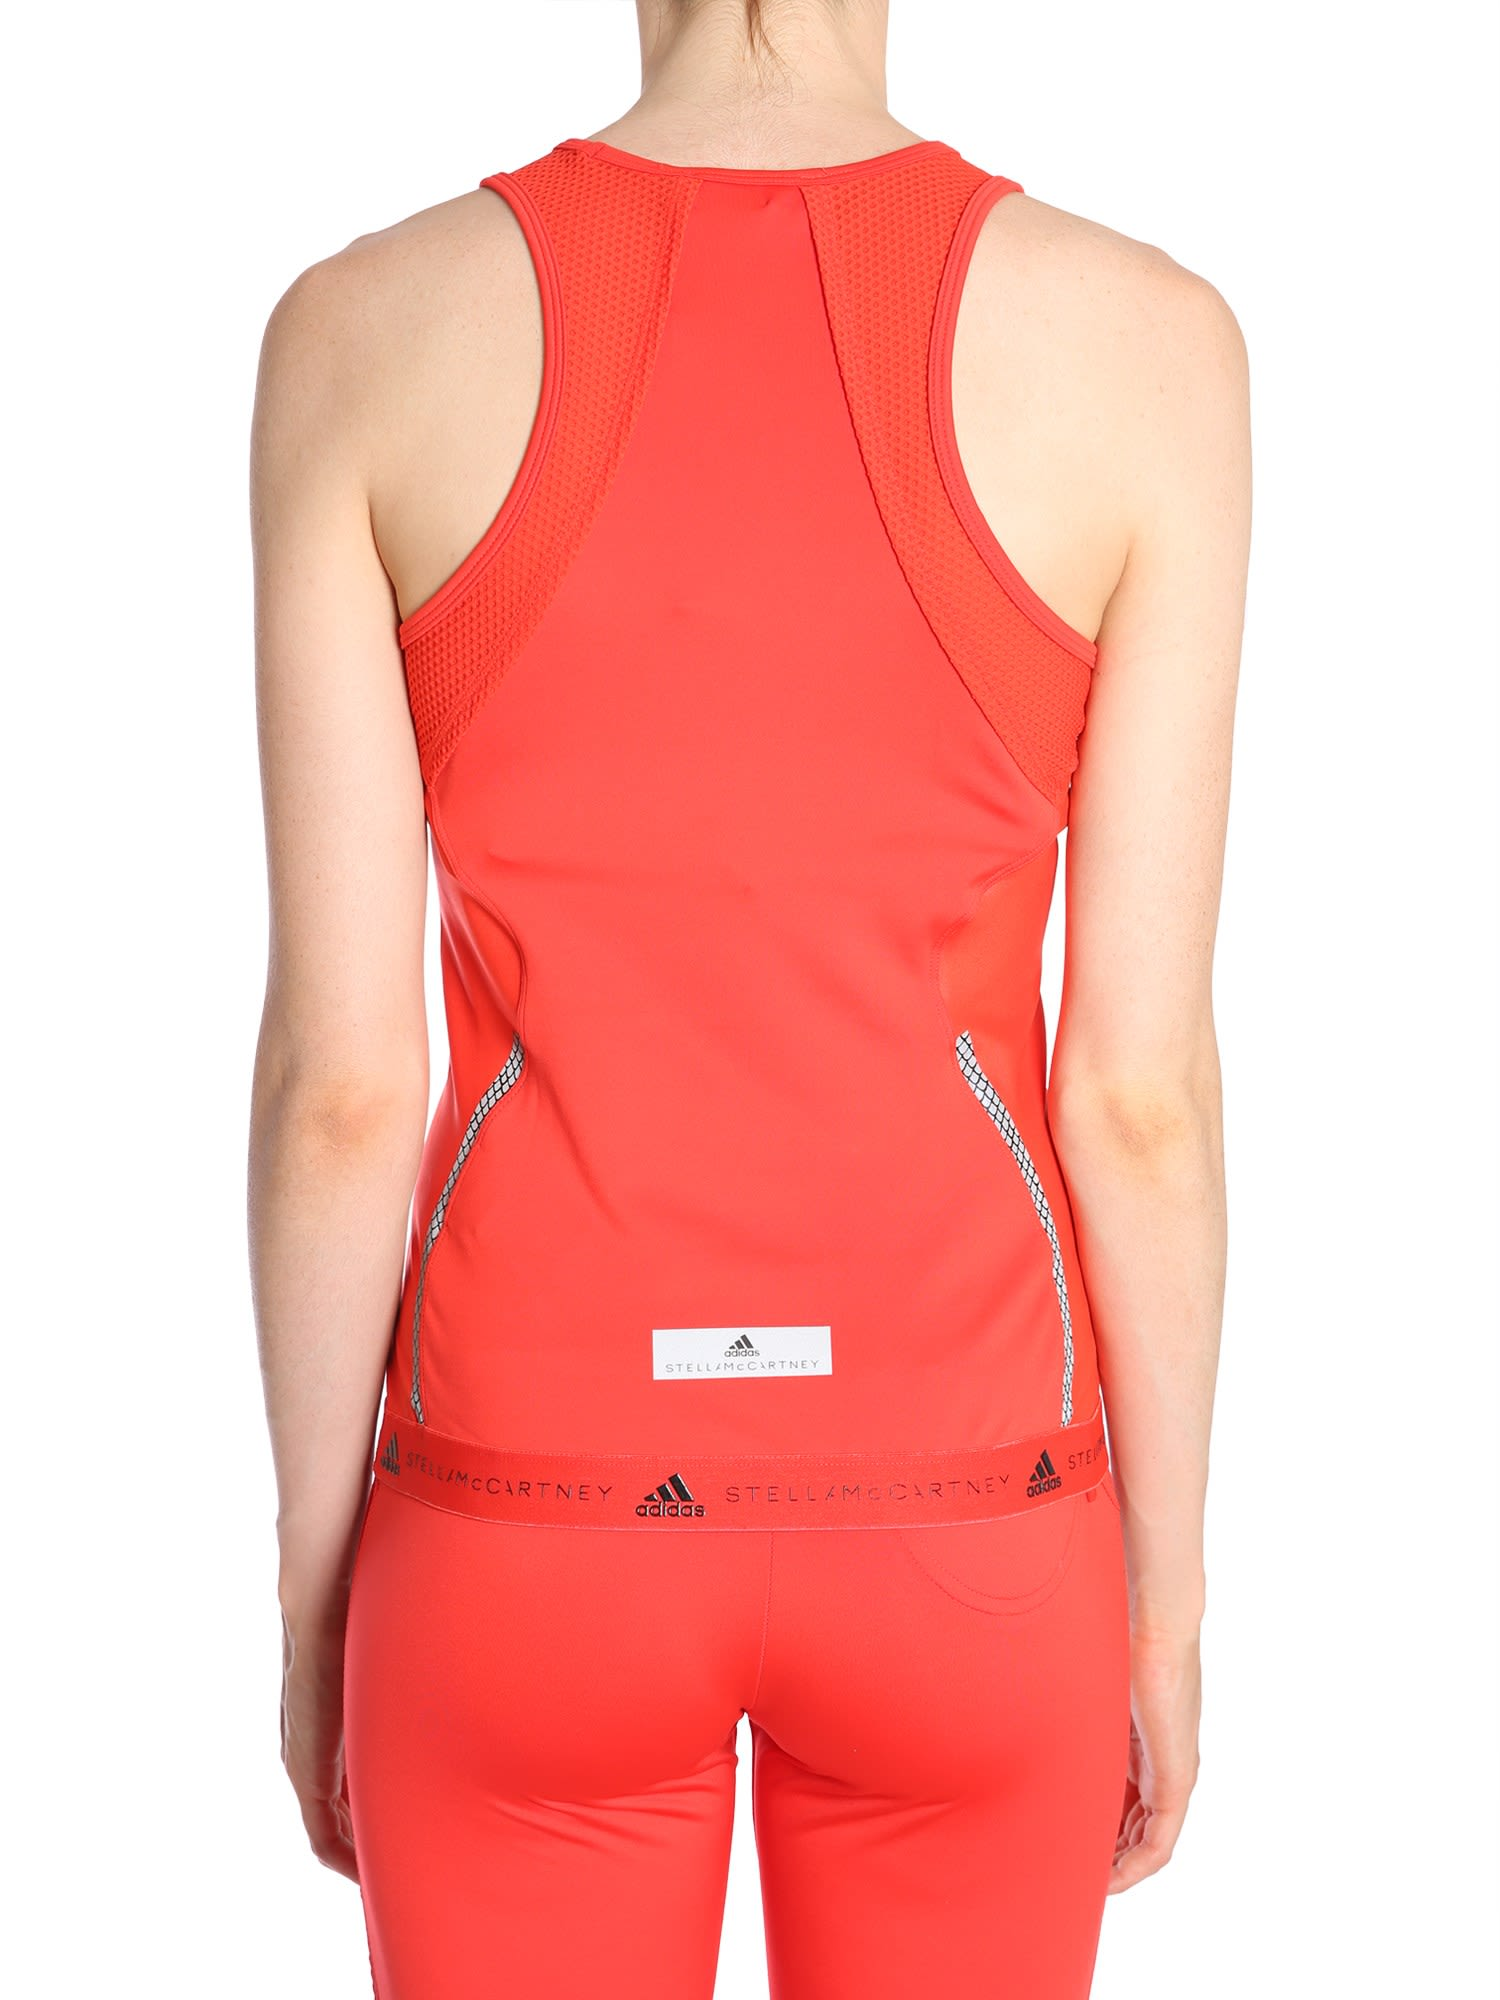 online store fc33e 8dc84 ... Adidas by Stella McCartney Run Tank Top - ROSSO ...